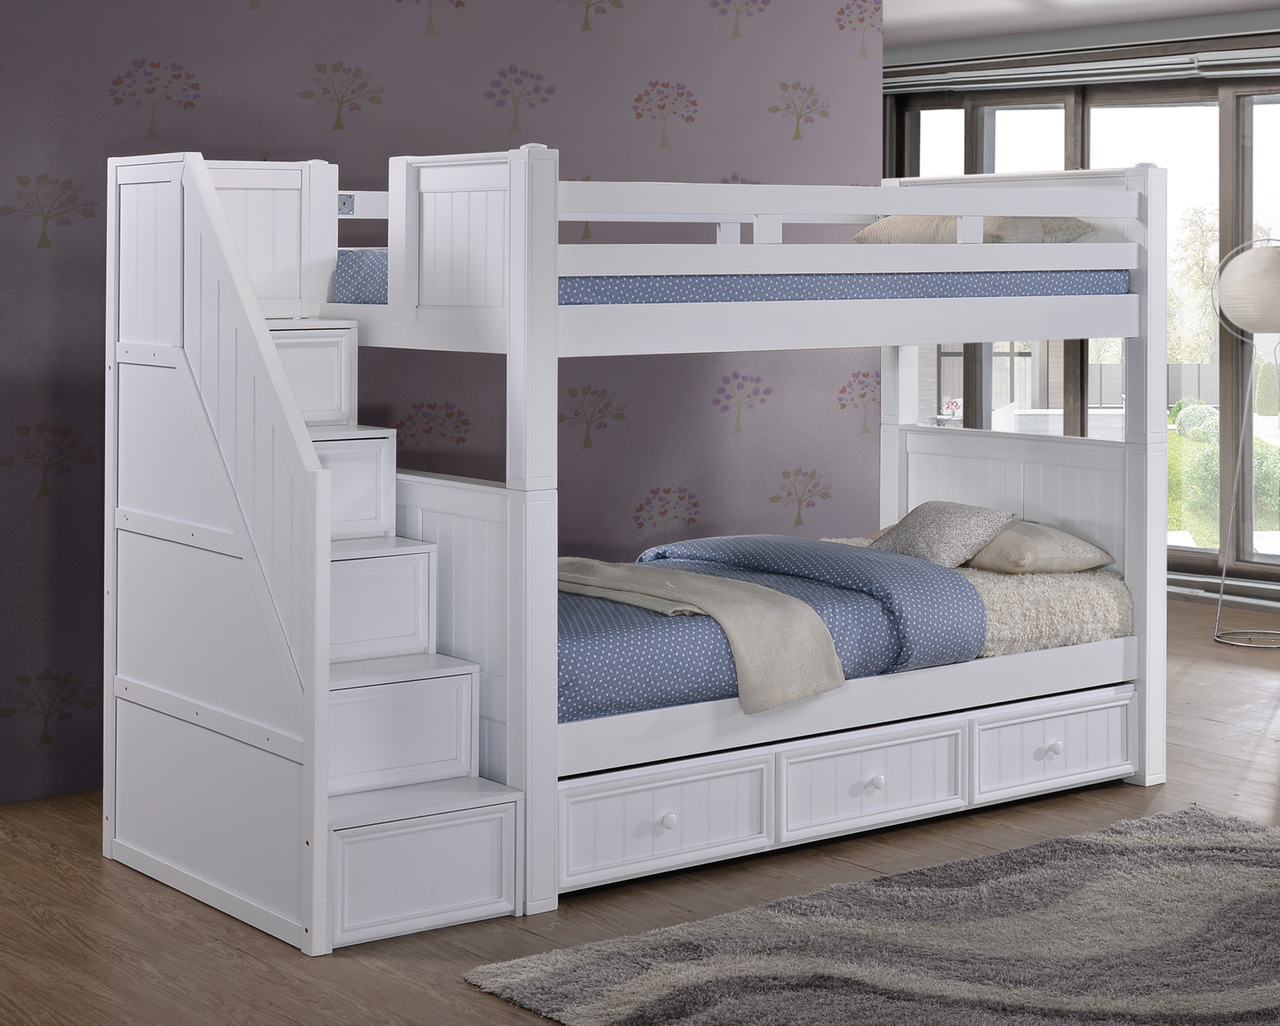 Picture of: White Bunk Beds With Storage Steps